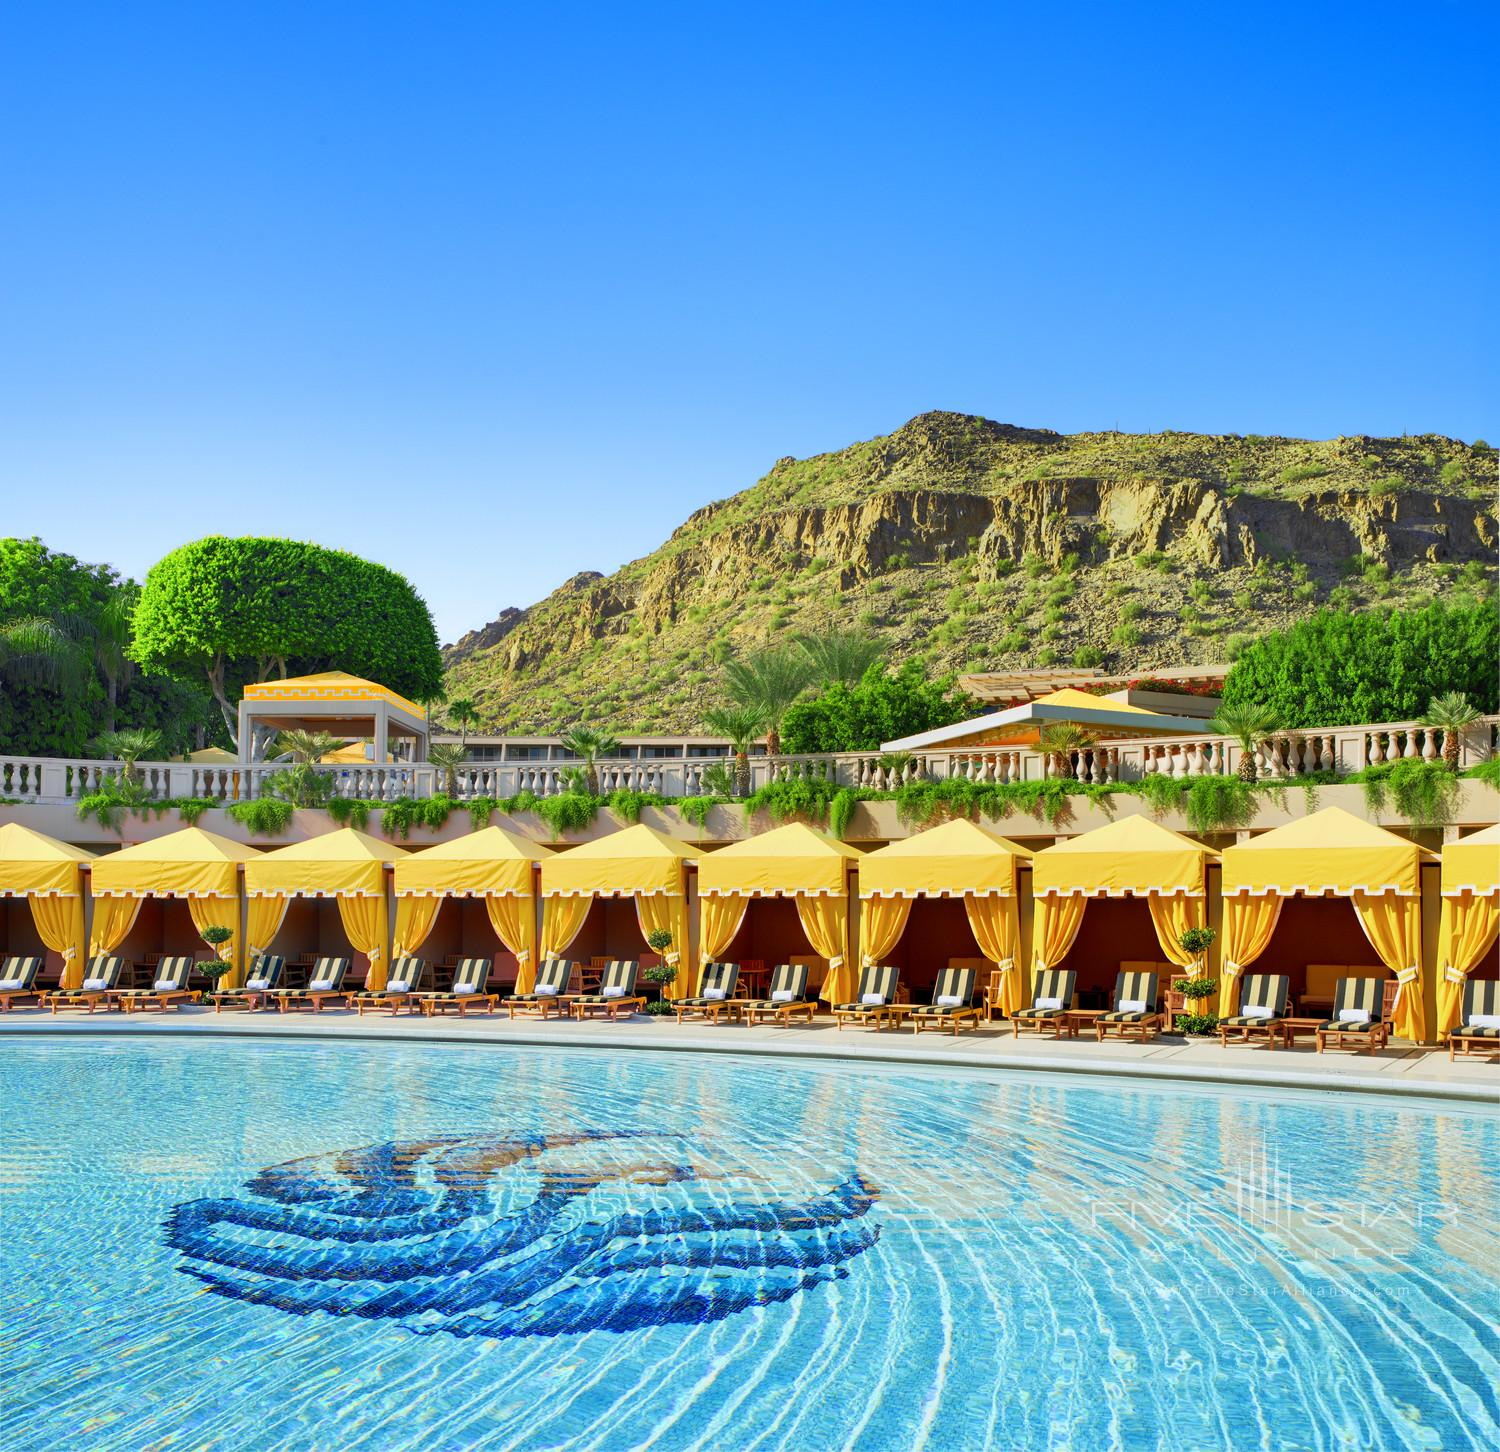 The Phoenician Pool Area